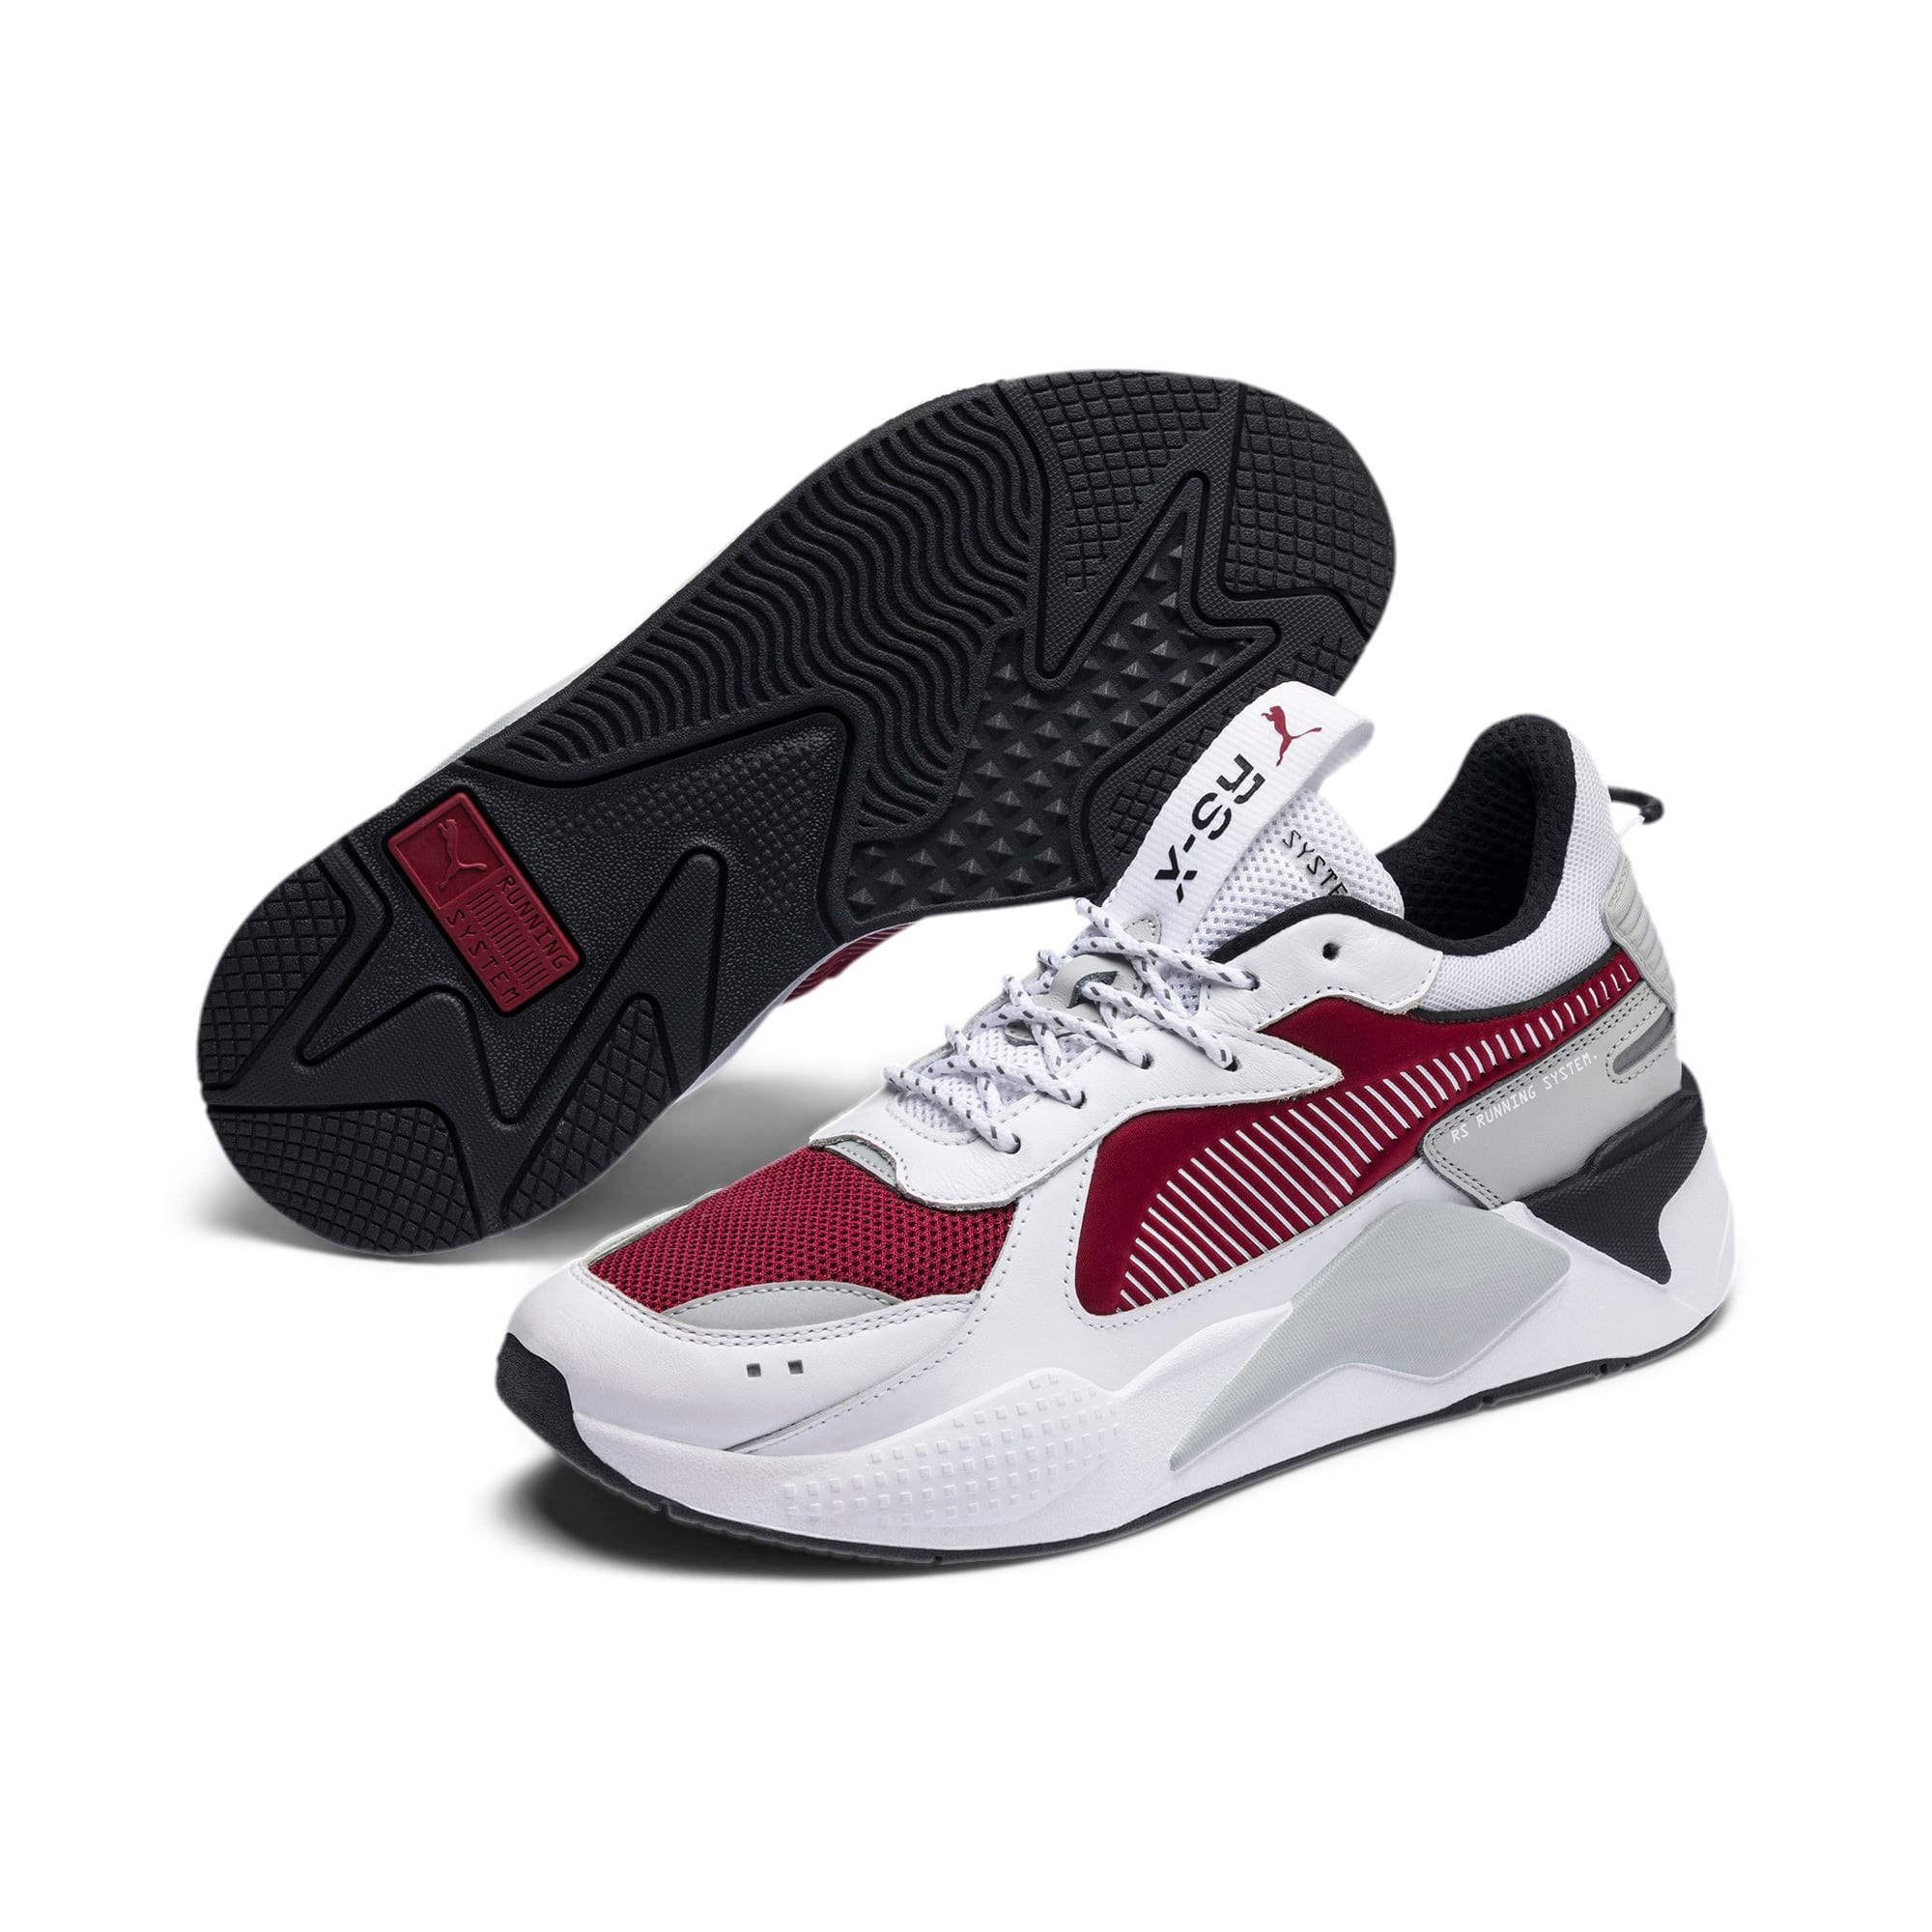 Thumbnail 3 of RS-X Trainers, Puma White-Rhubarb, medium